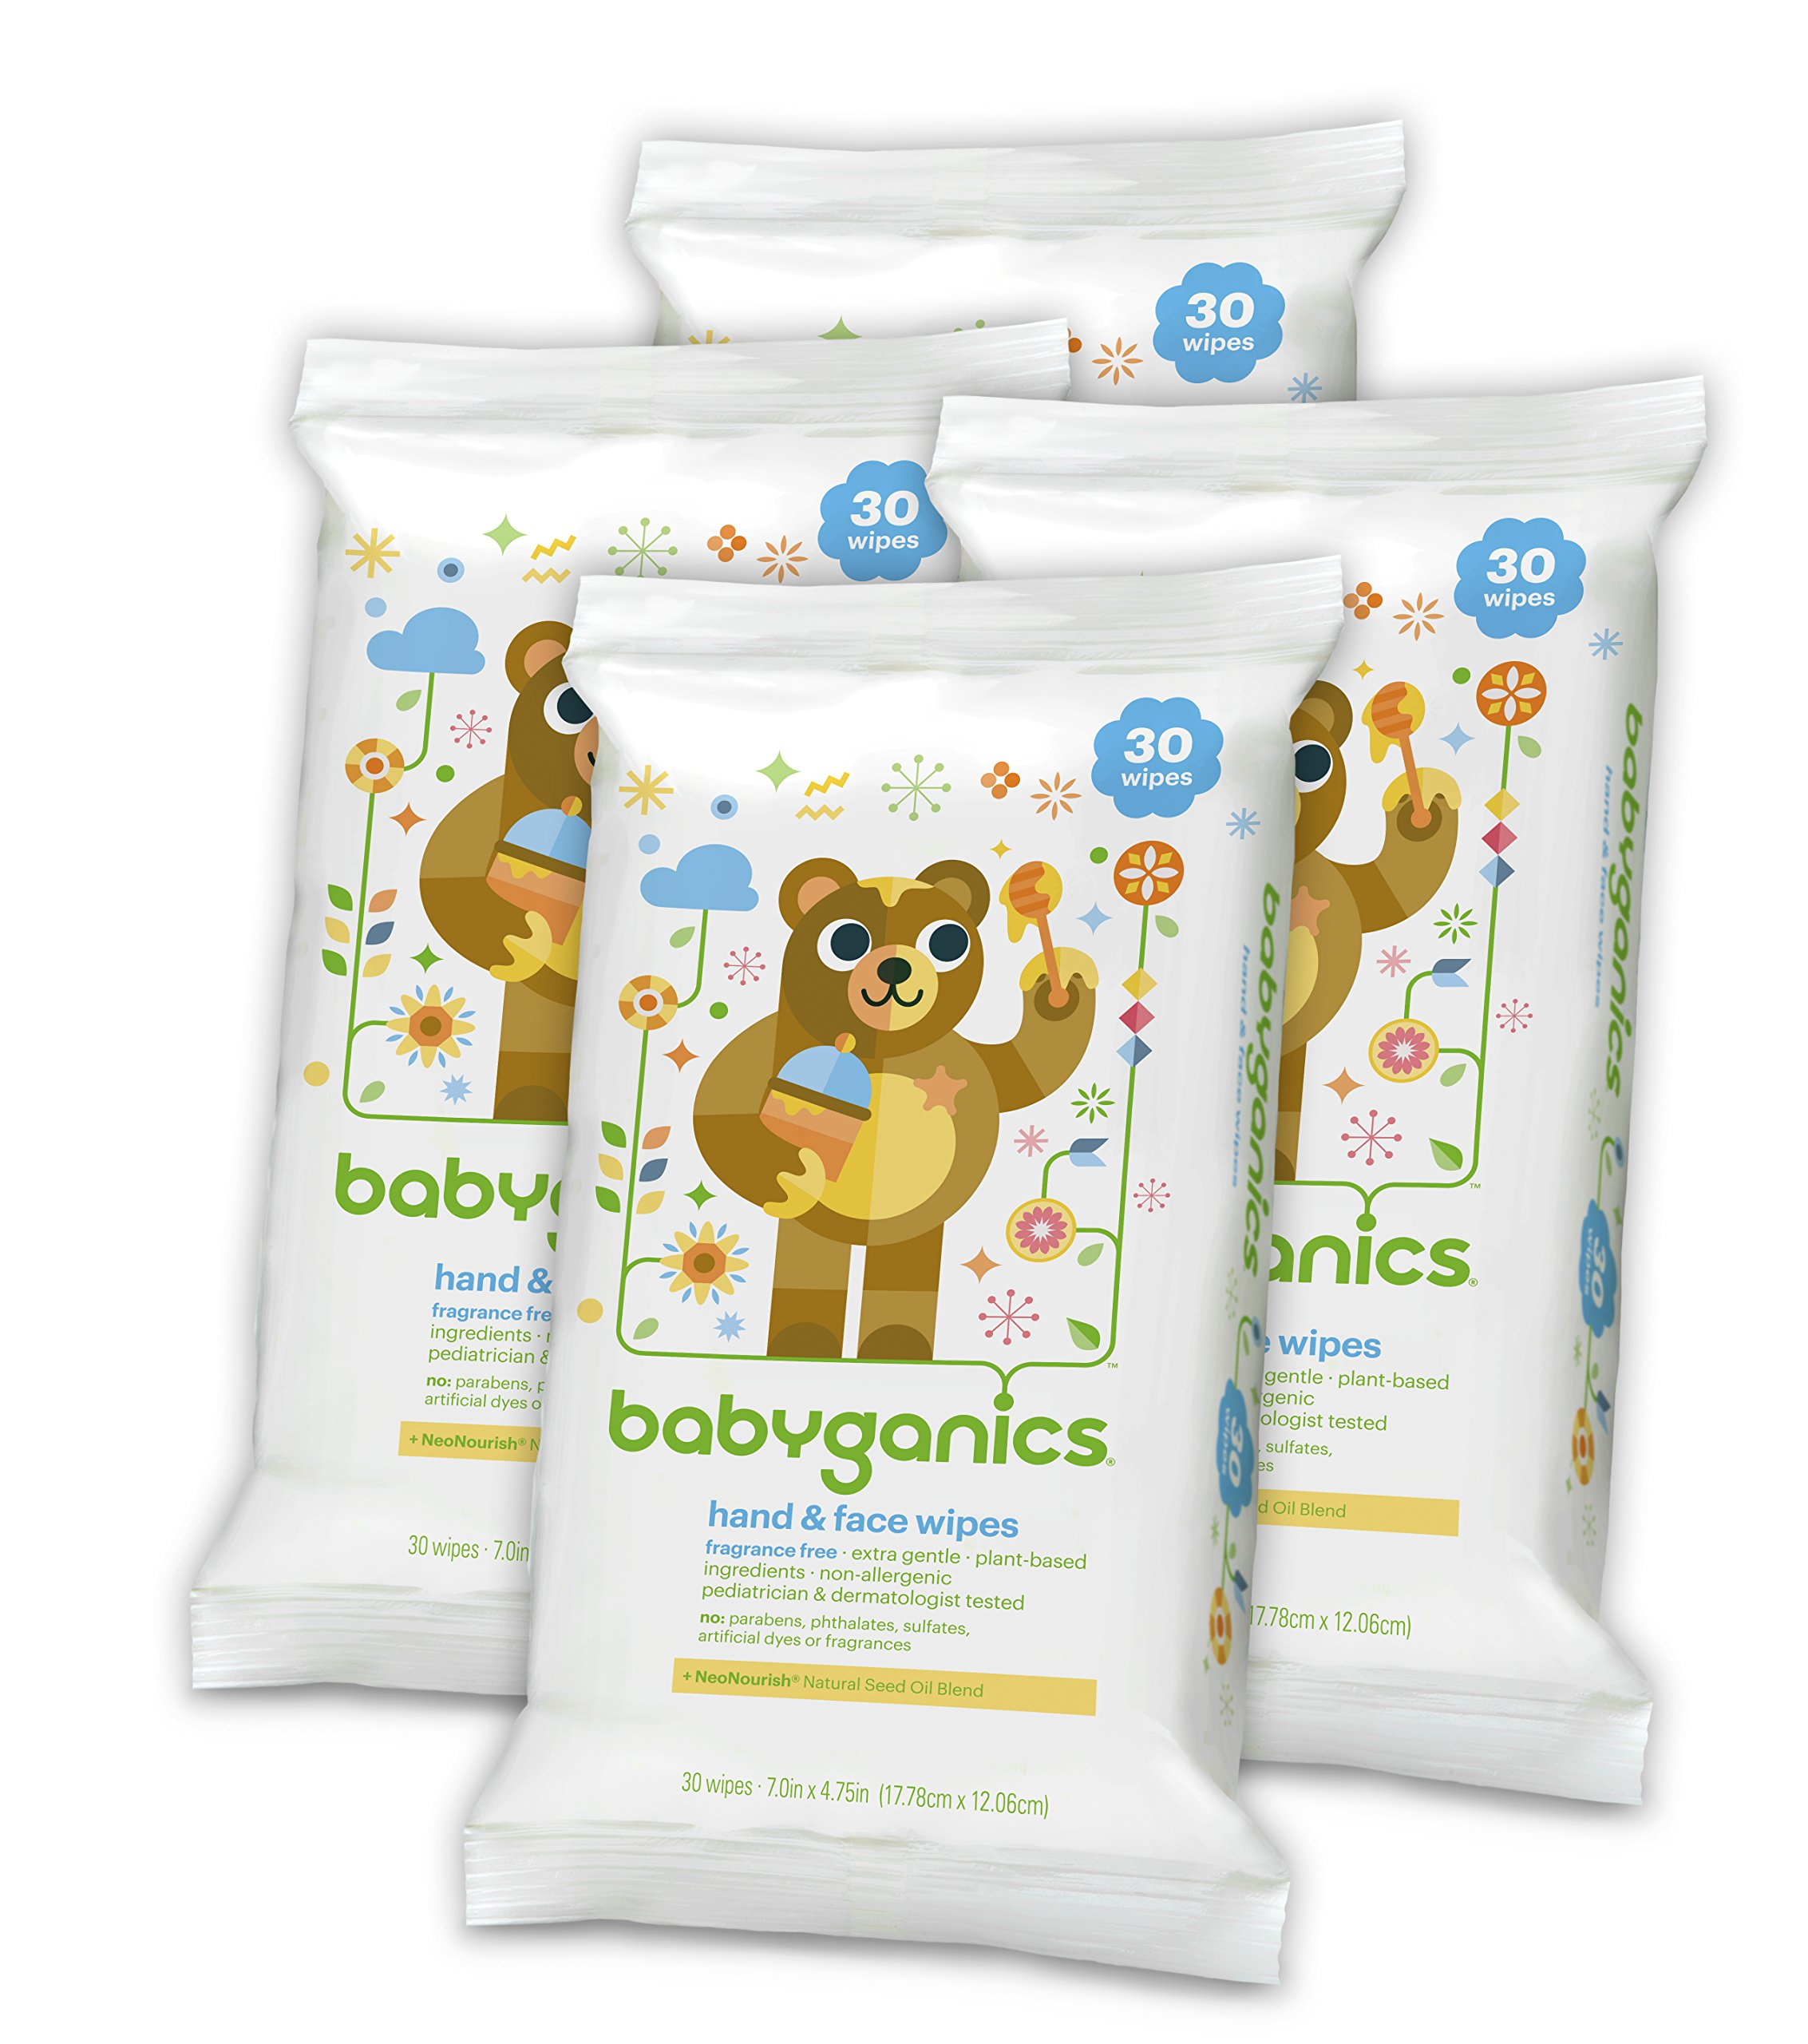 Babyganics Hand & Face Wipes, Fragrance Free, 30 Count (Pack of 4, 120 Total Wipes) by Babyganics